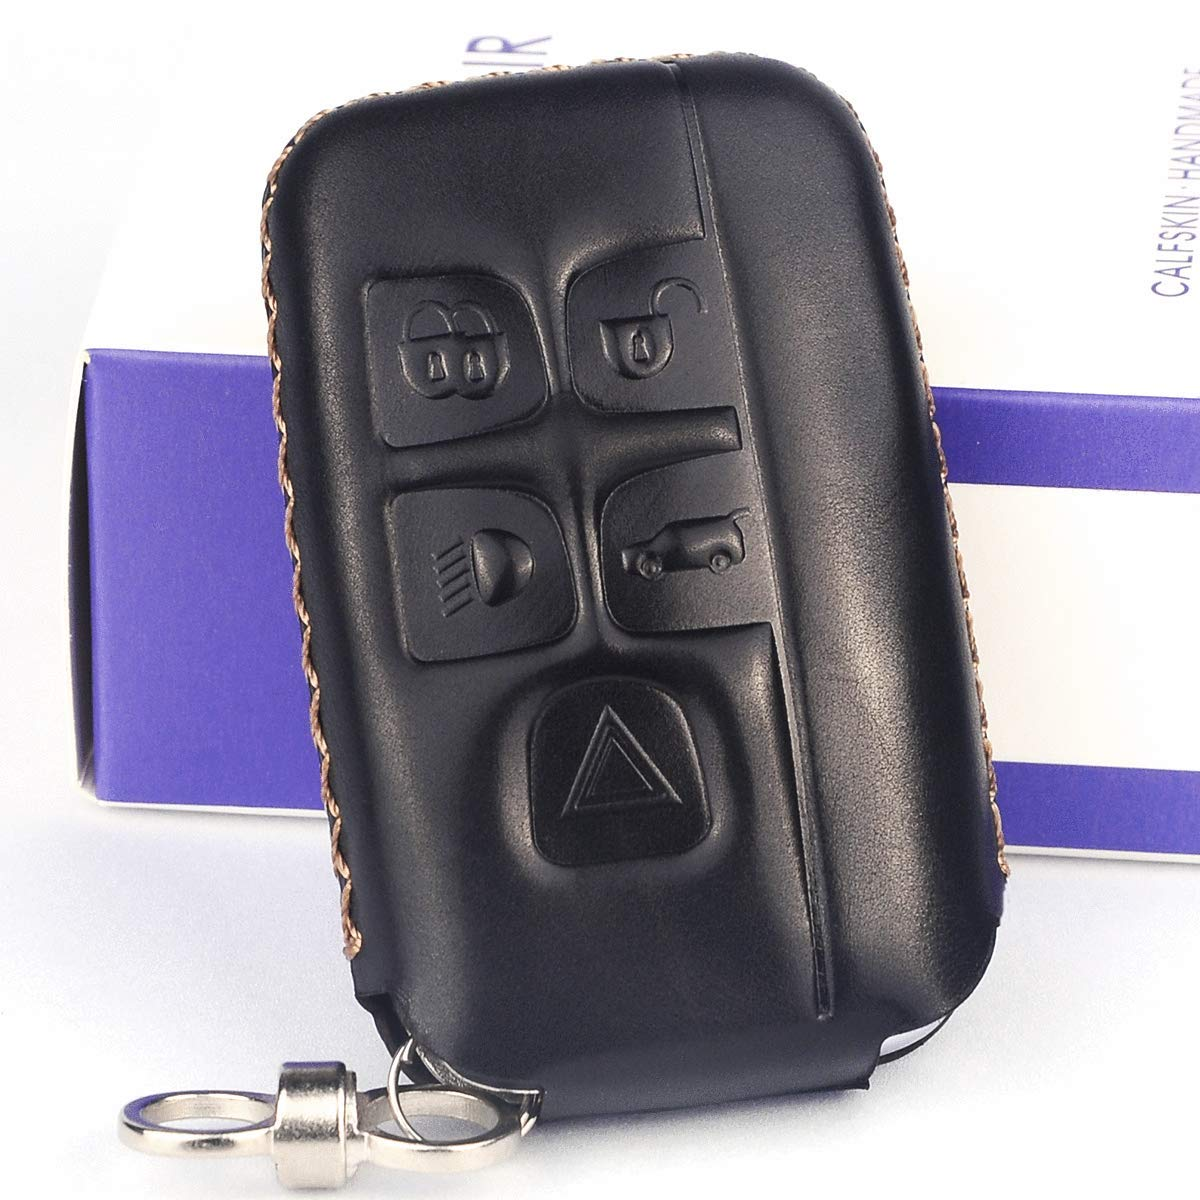 Cadtealir absortive Baby Calfskin Genuine Leather Key fob Cover case Holder for Jaguar xf xj xjl xe f-pace